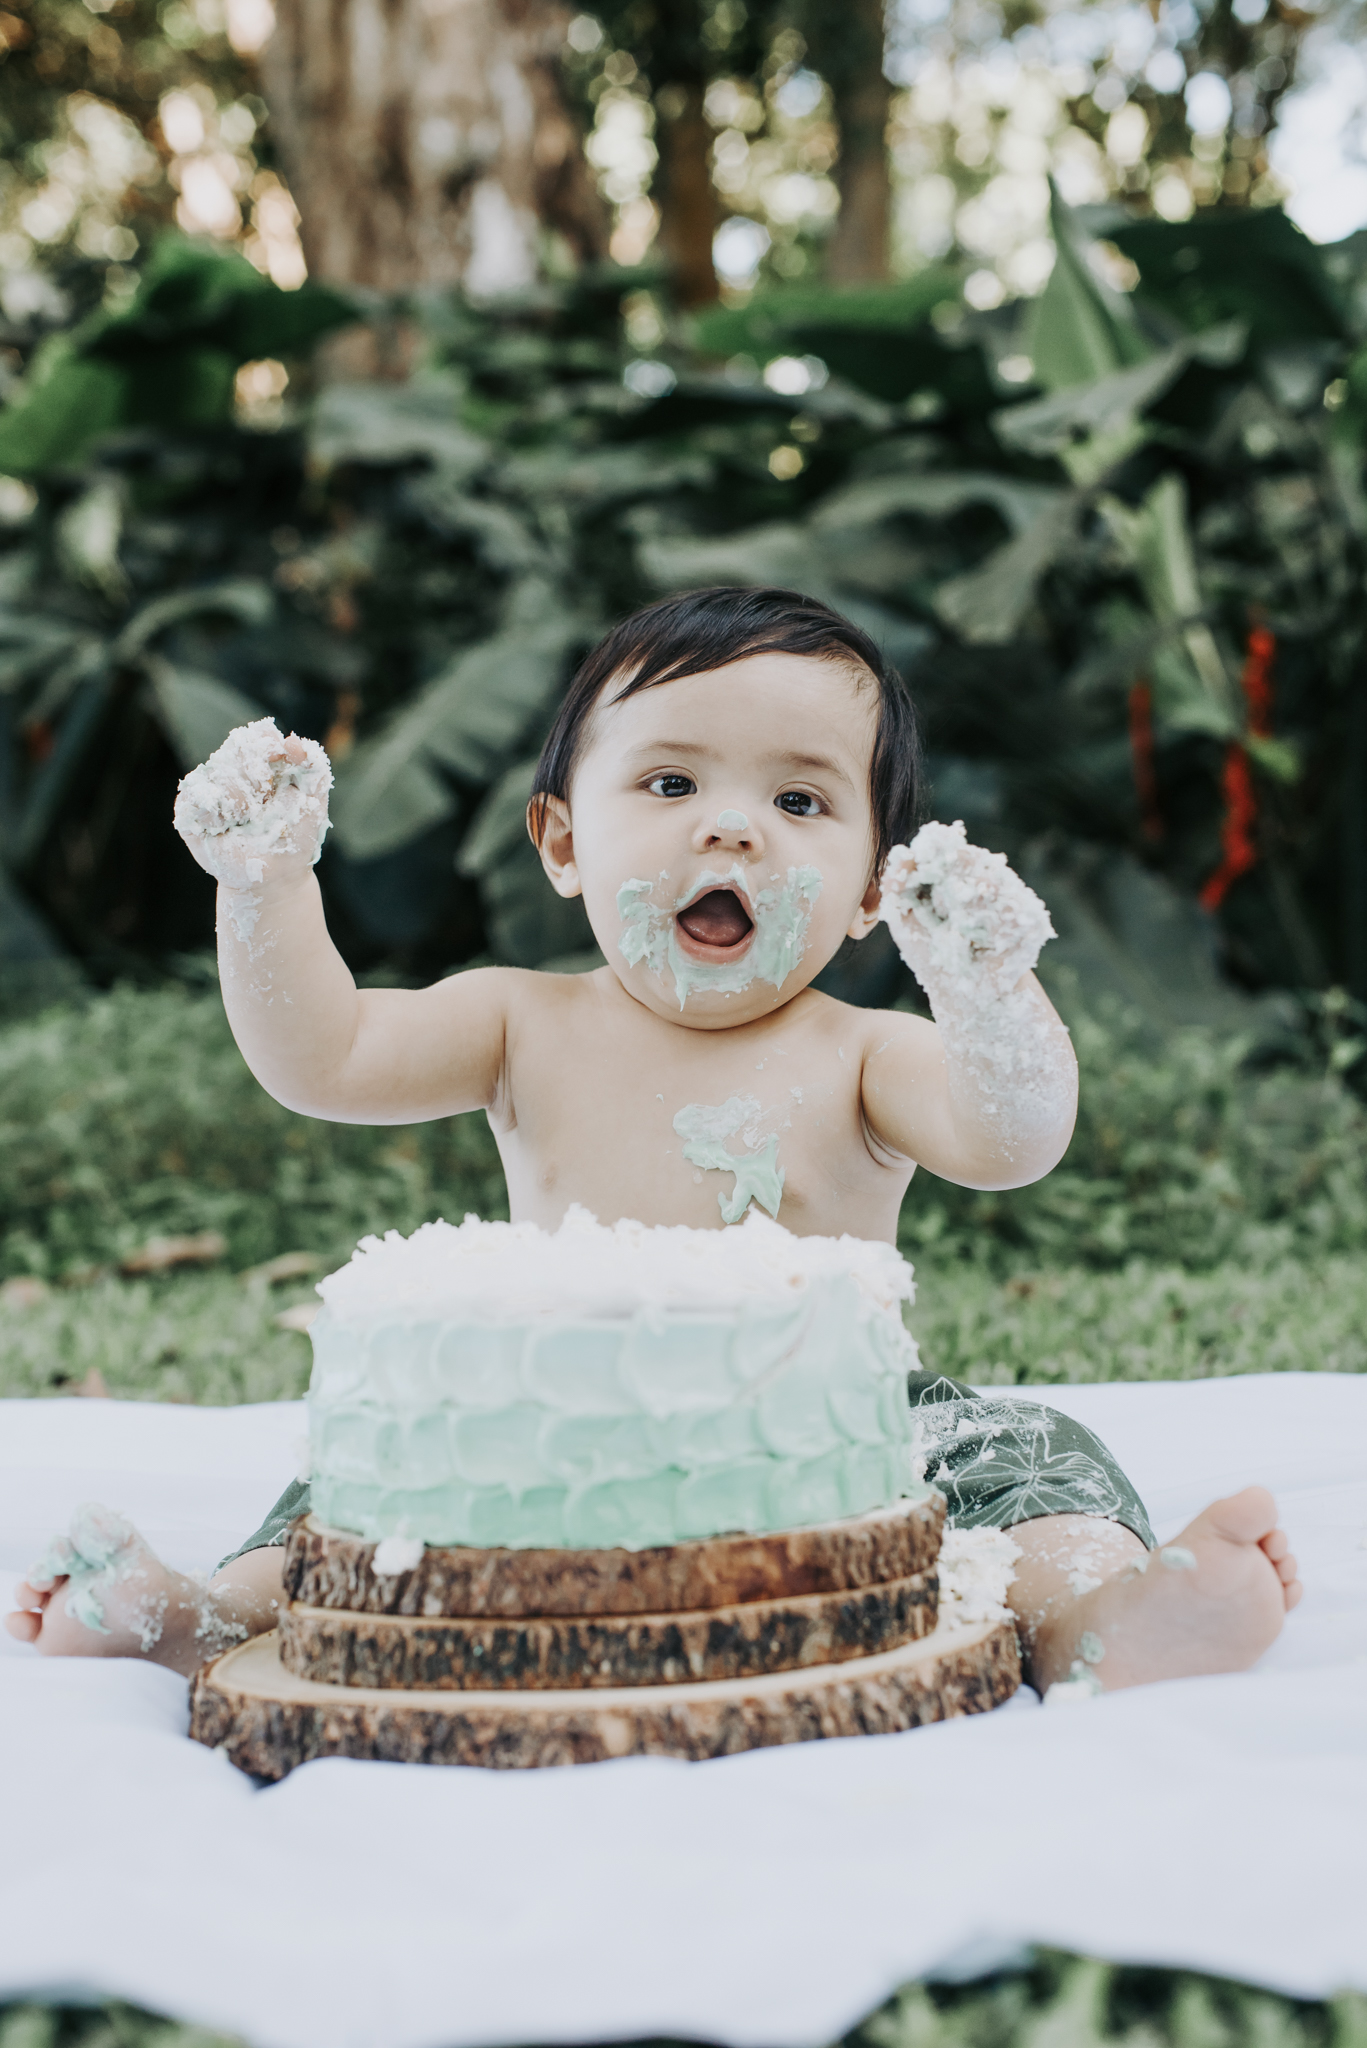 Queen Emma Park Cake Smash | Oahu Lifestyle Photographer